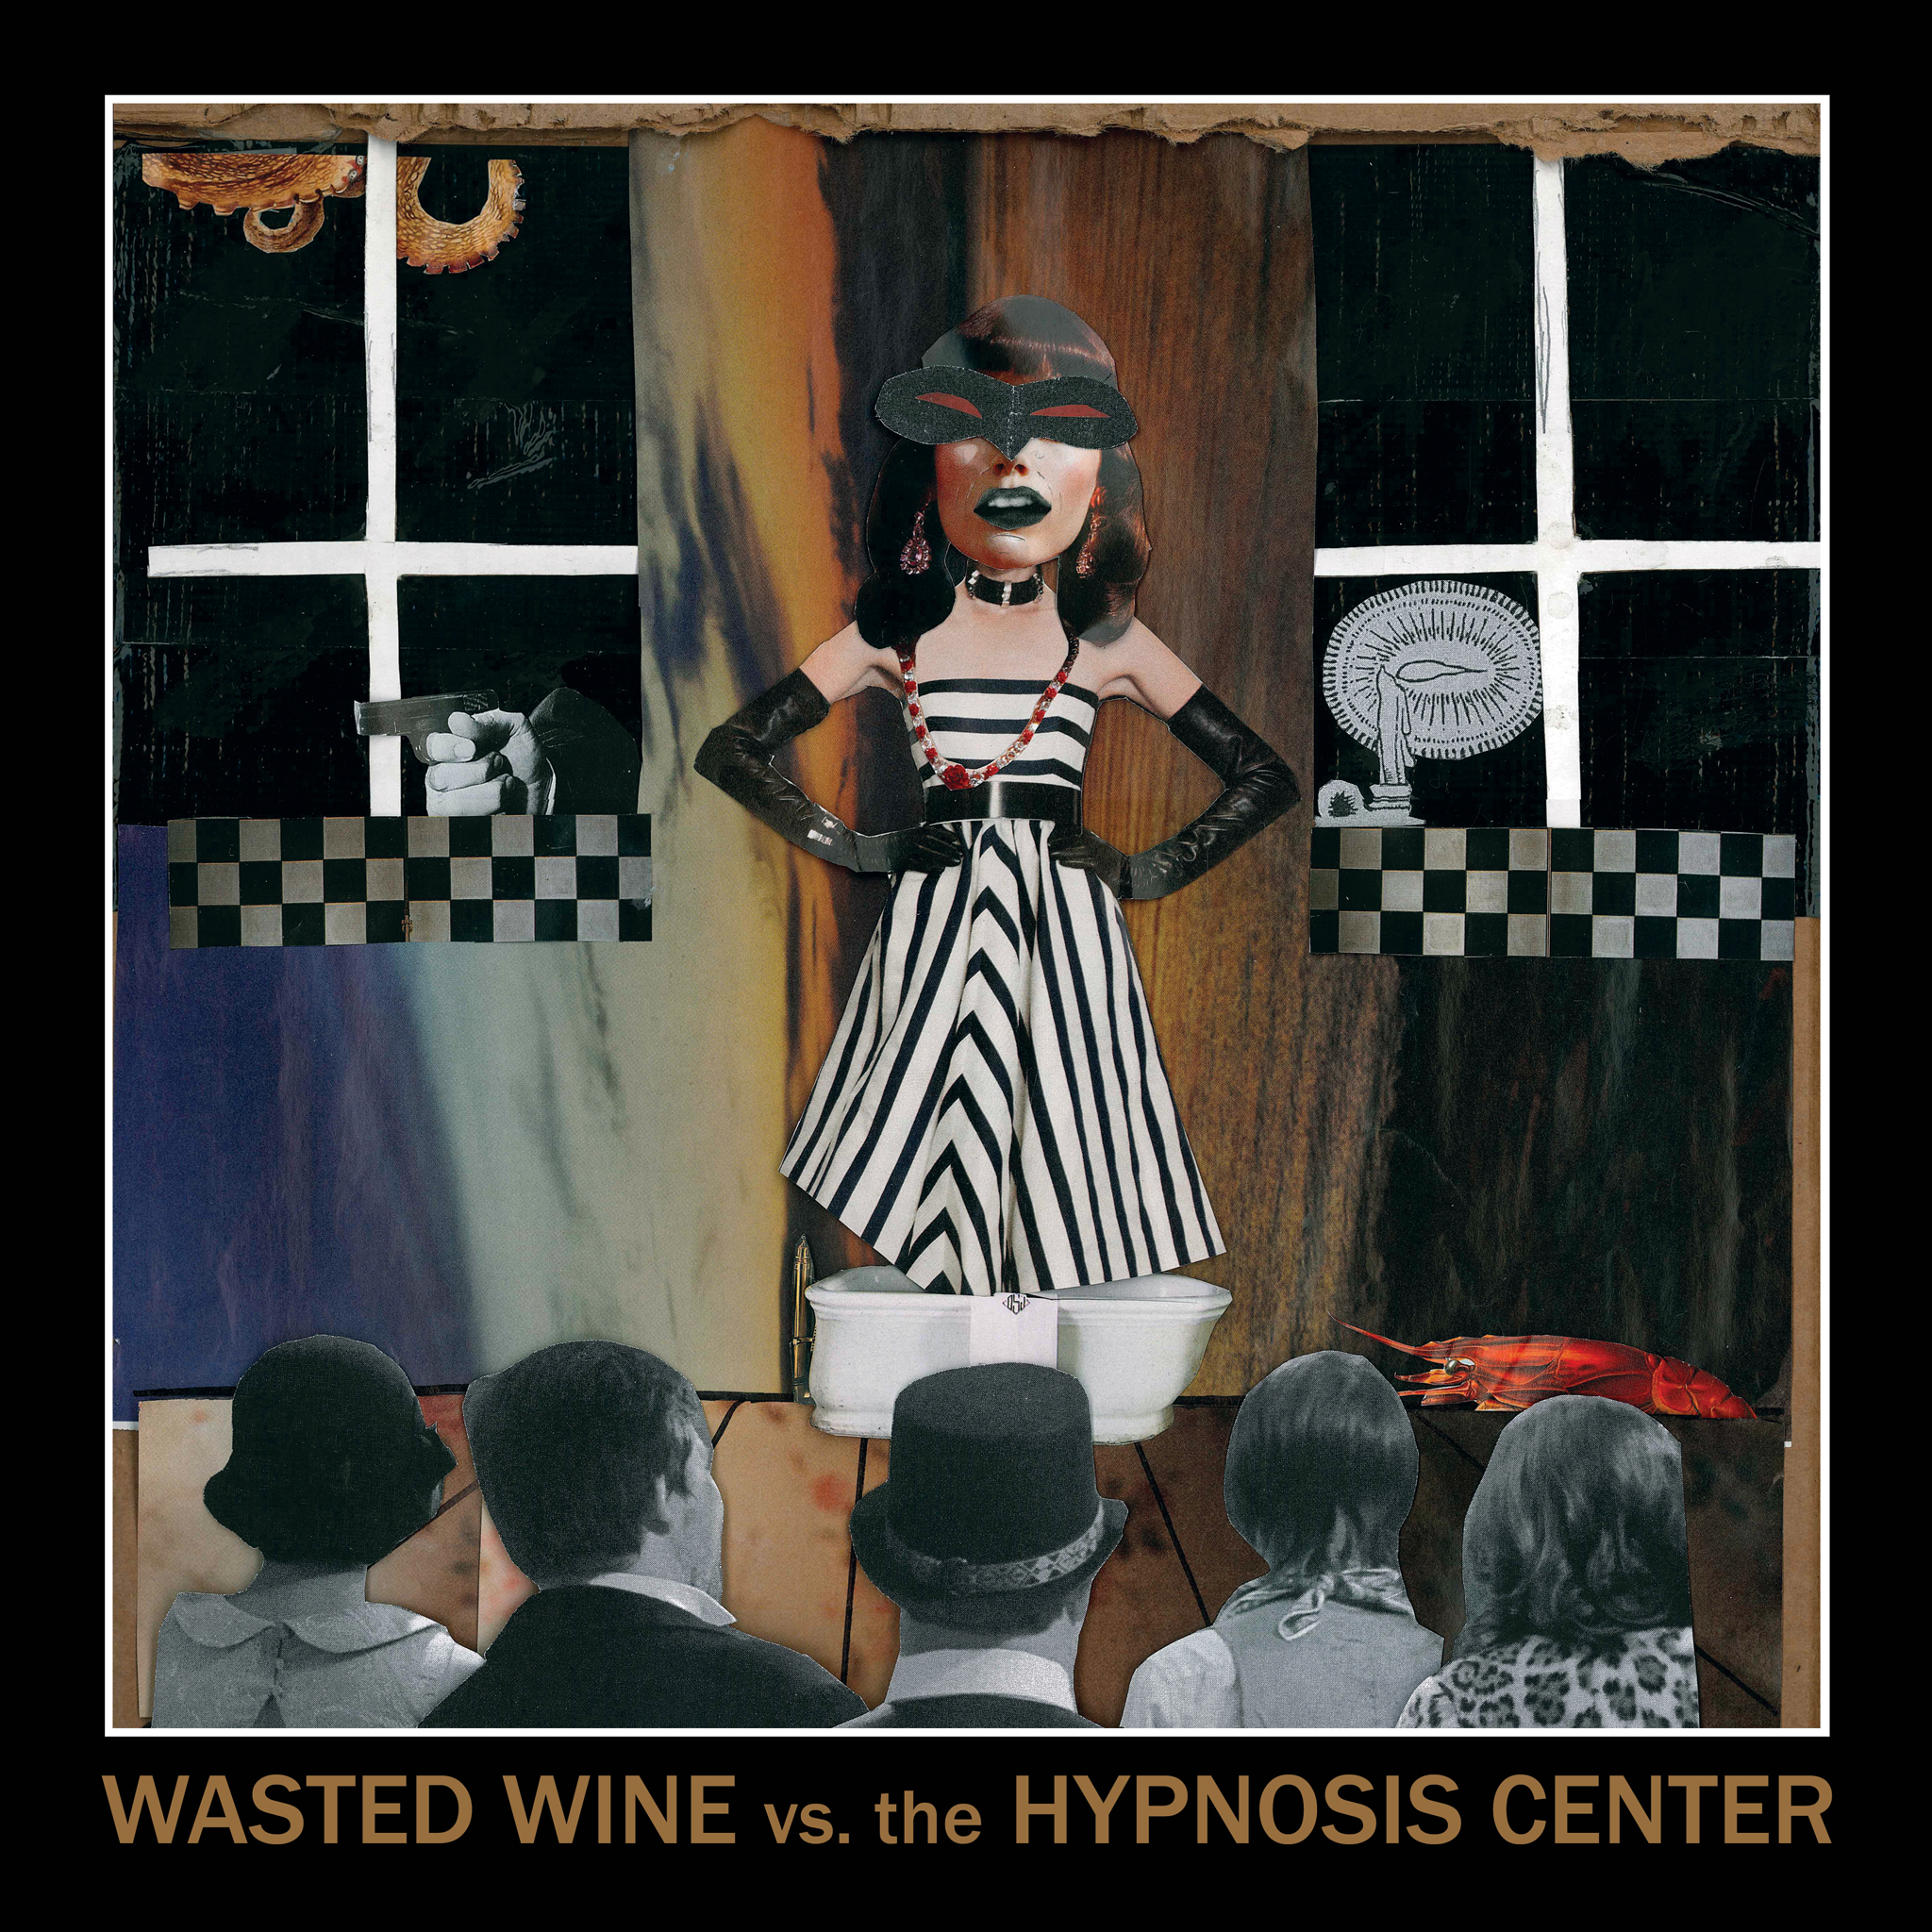 Wasted Wine - Wasted Wine vs. The Hypnosis Center